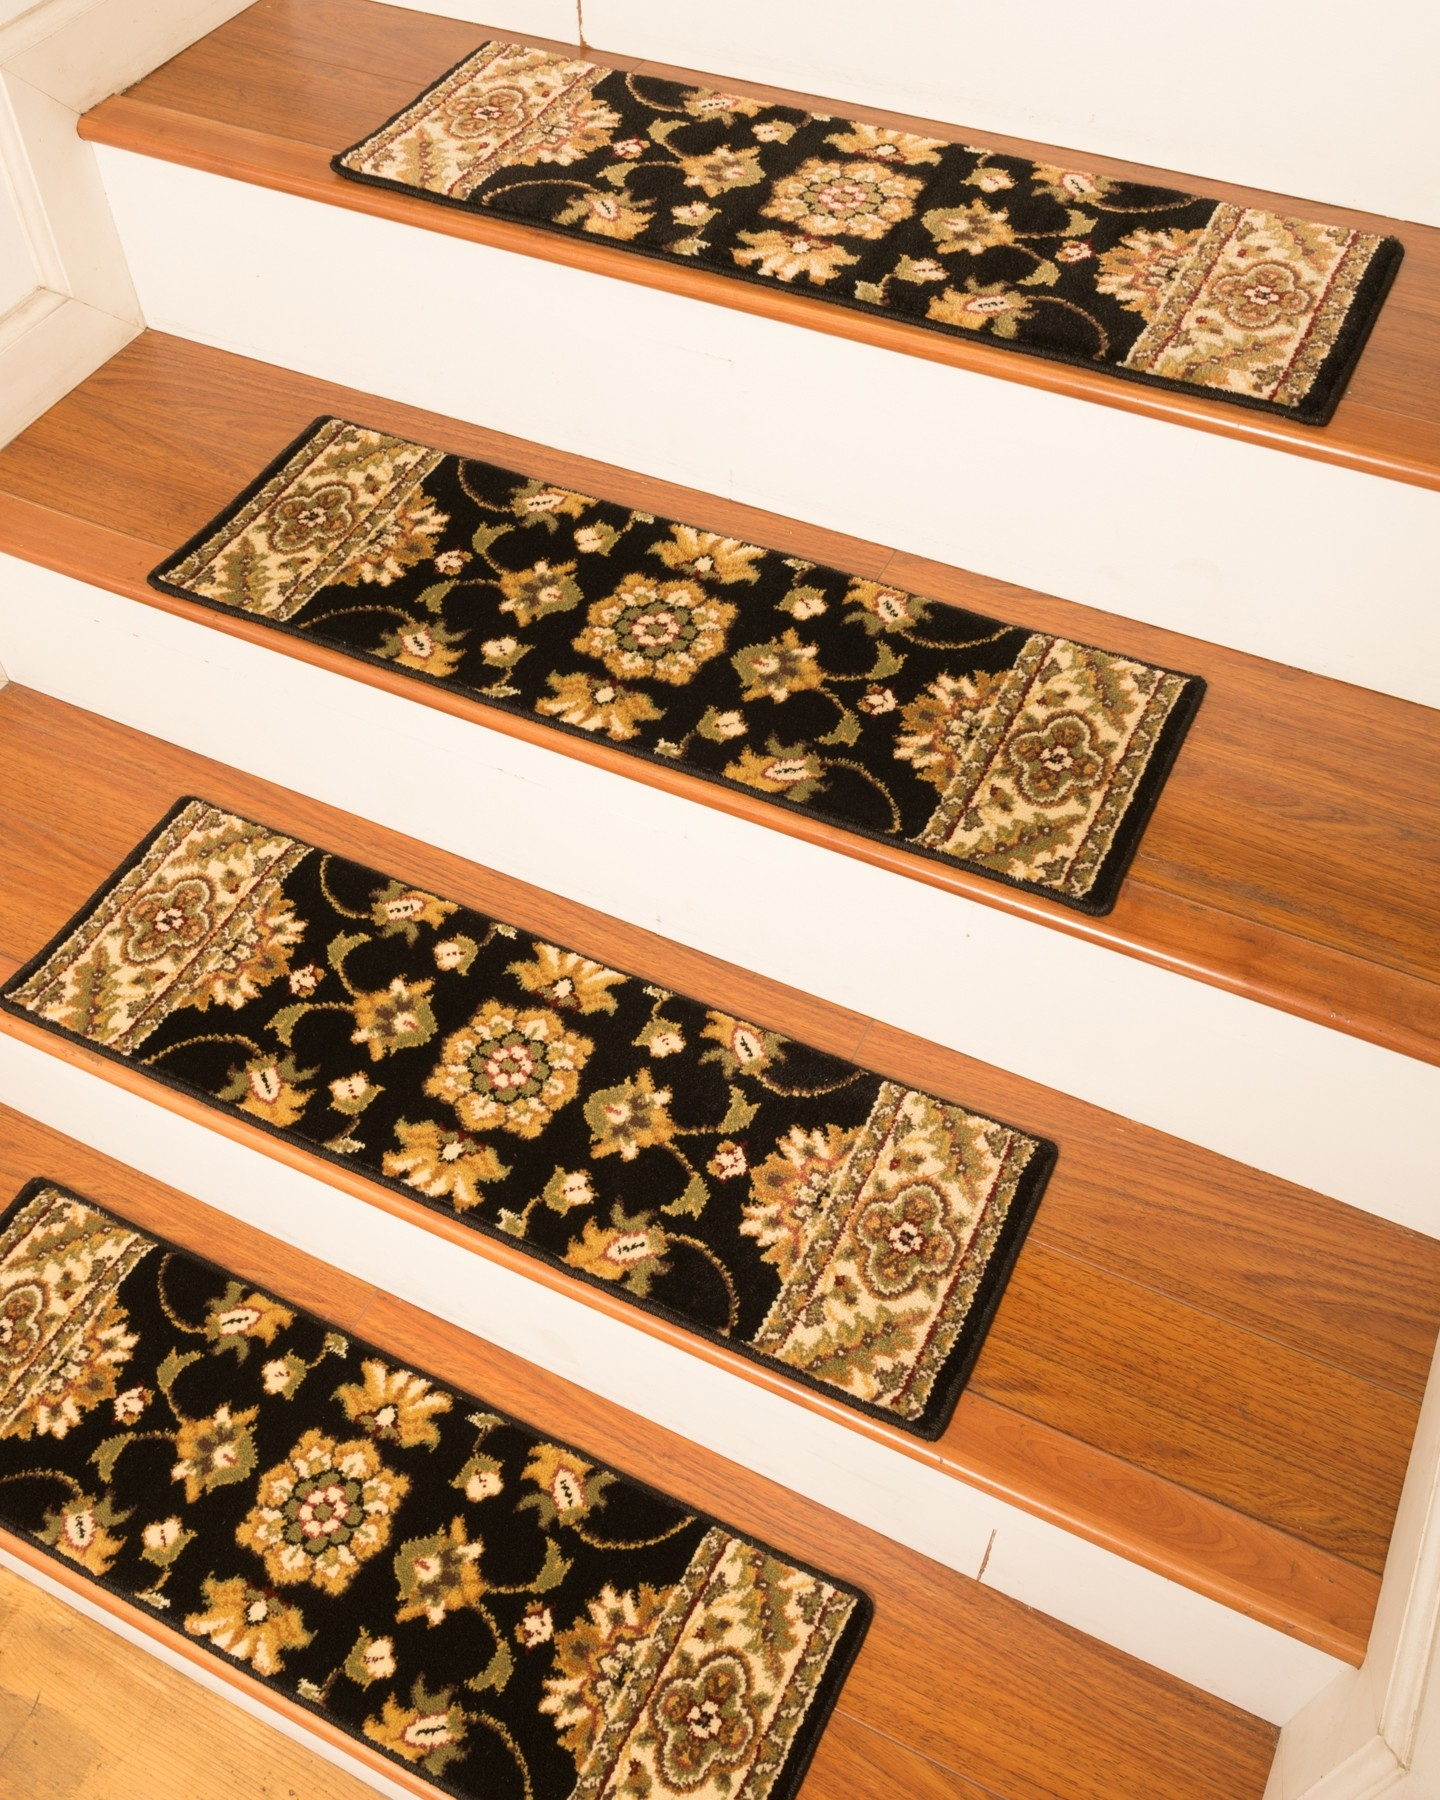 Sherwood Carpet Stair Treads Black Natural Home Rugs Natural In Stair Tread Rug Sets (Image 12 of 15)